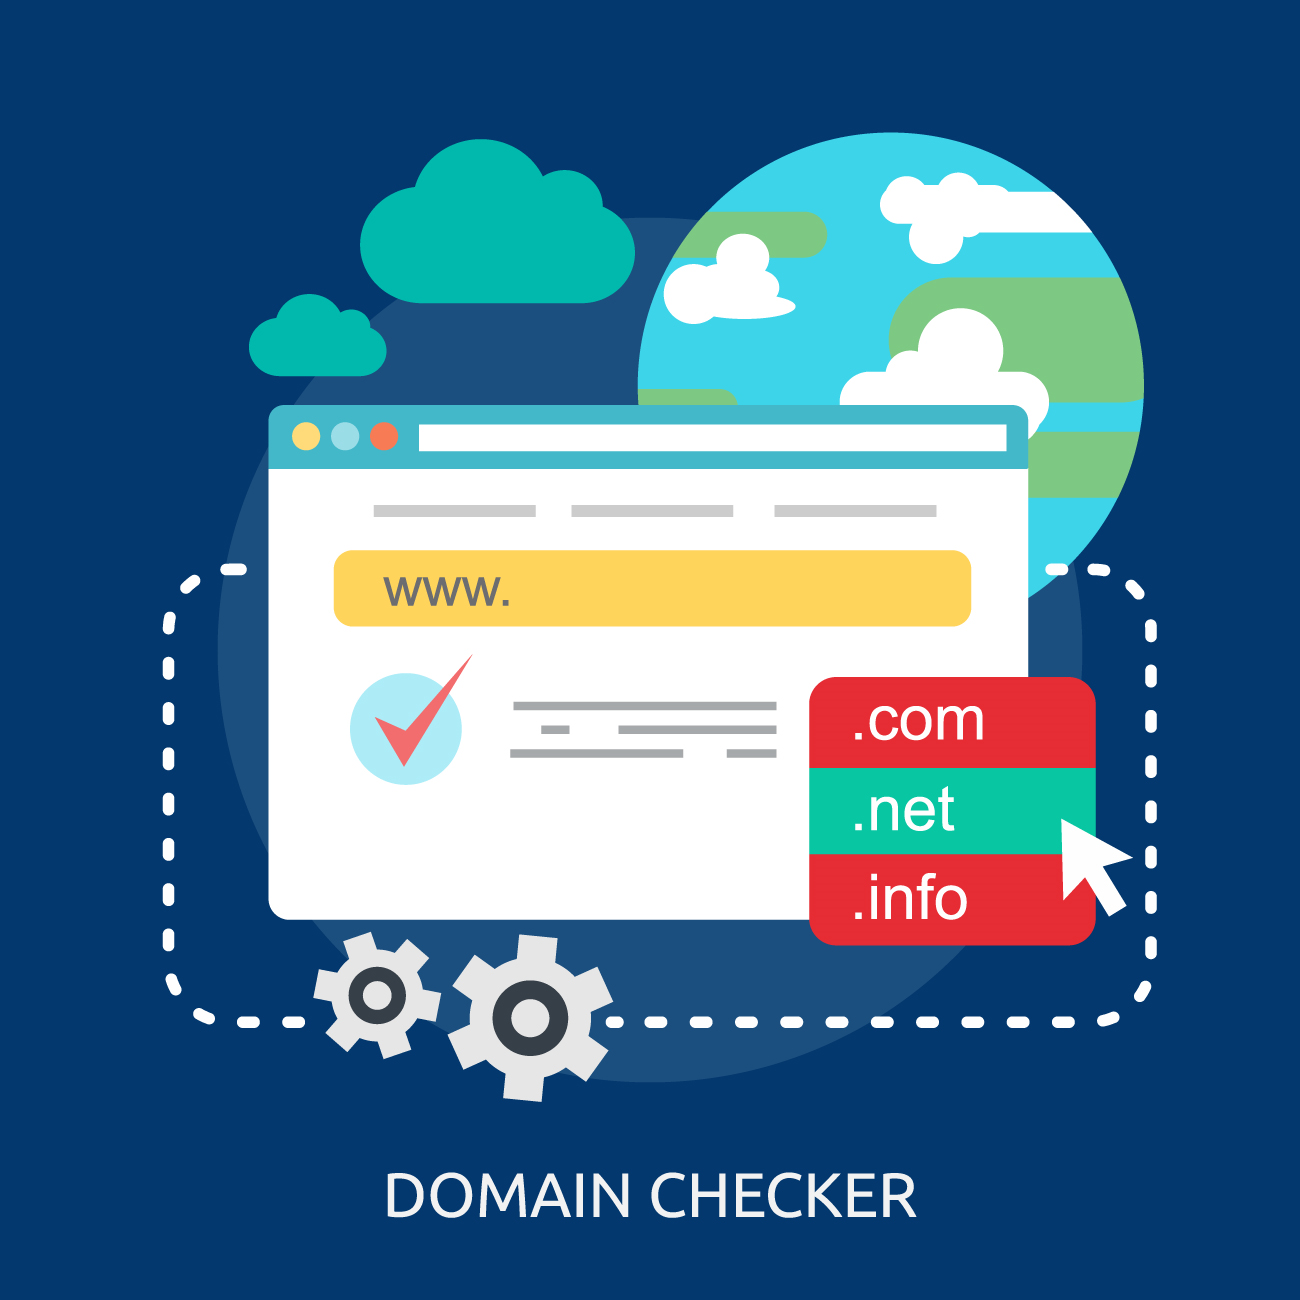 Domain checker logo